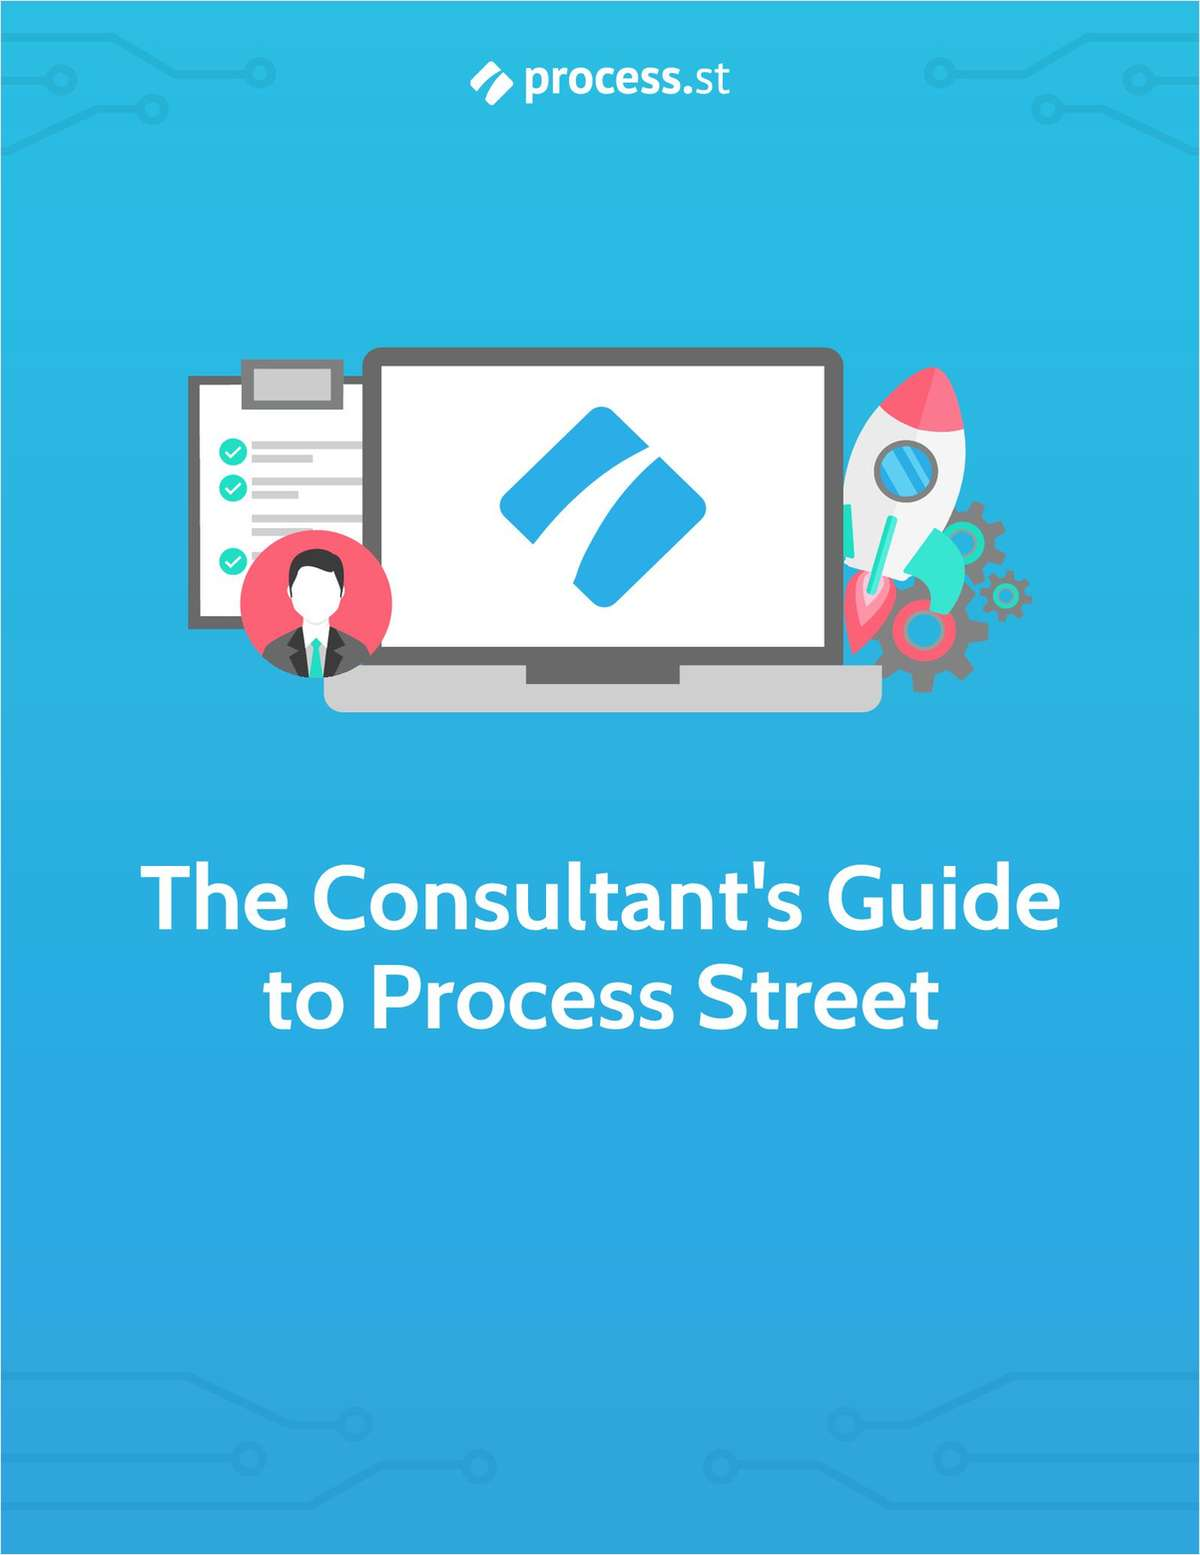 The Consultant's Guide to Process Street